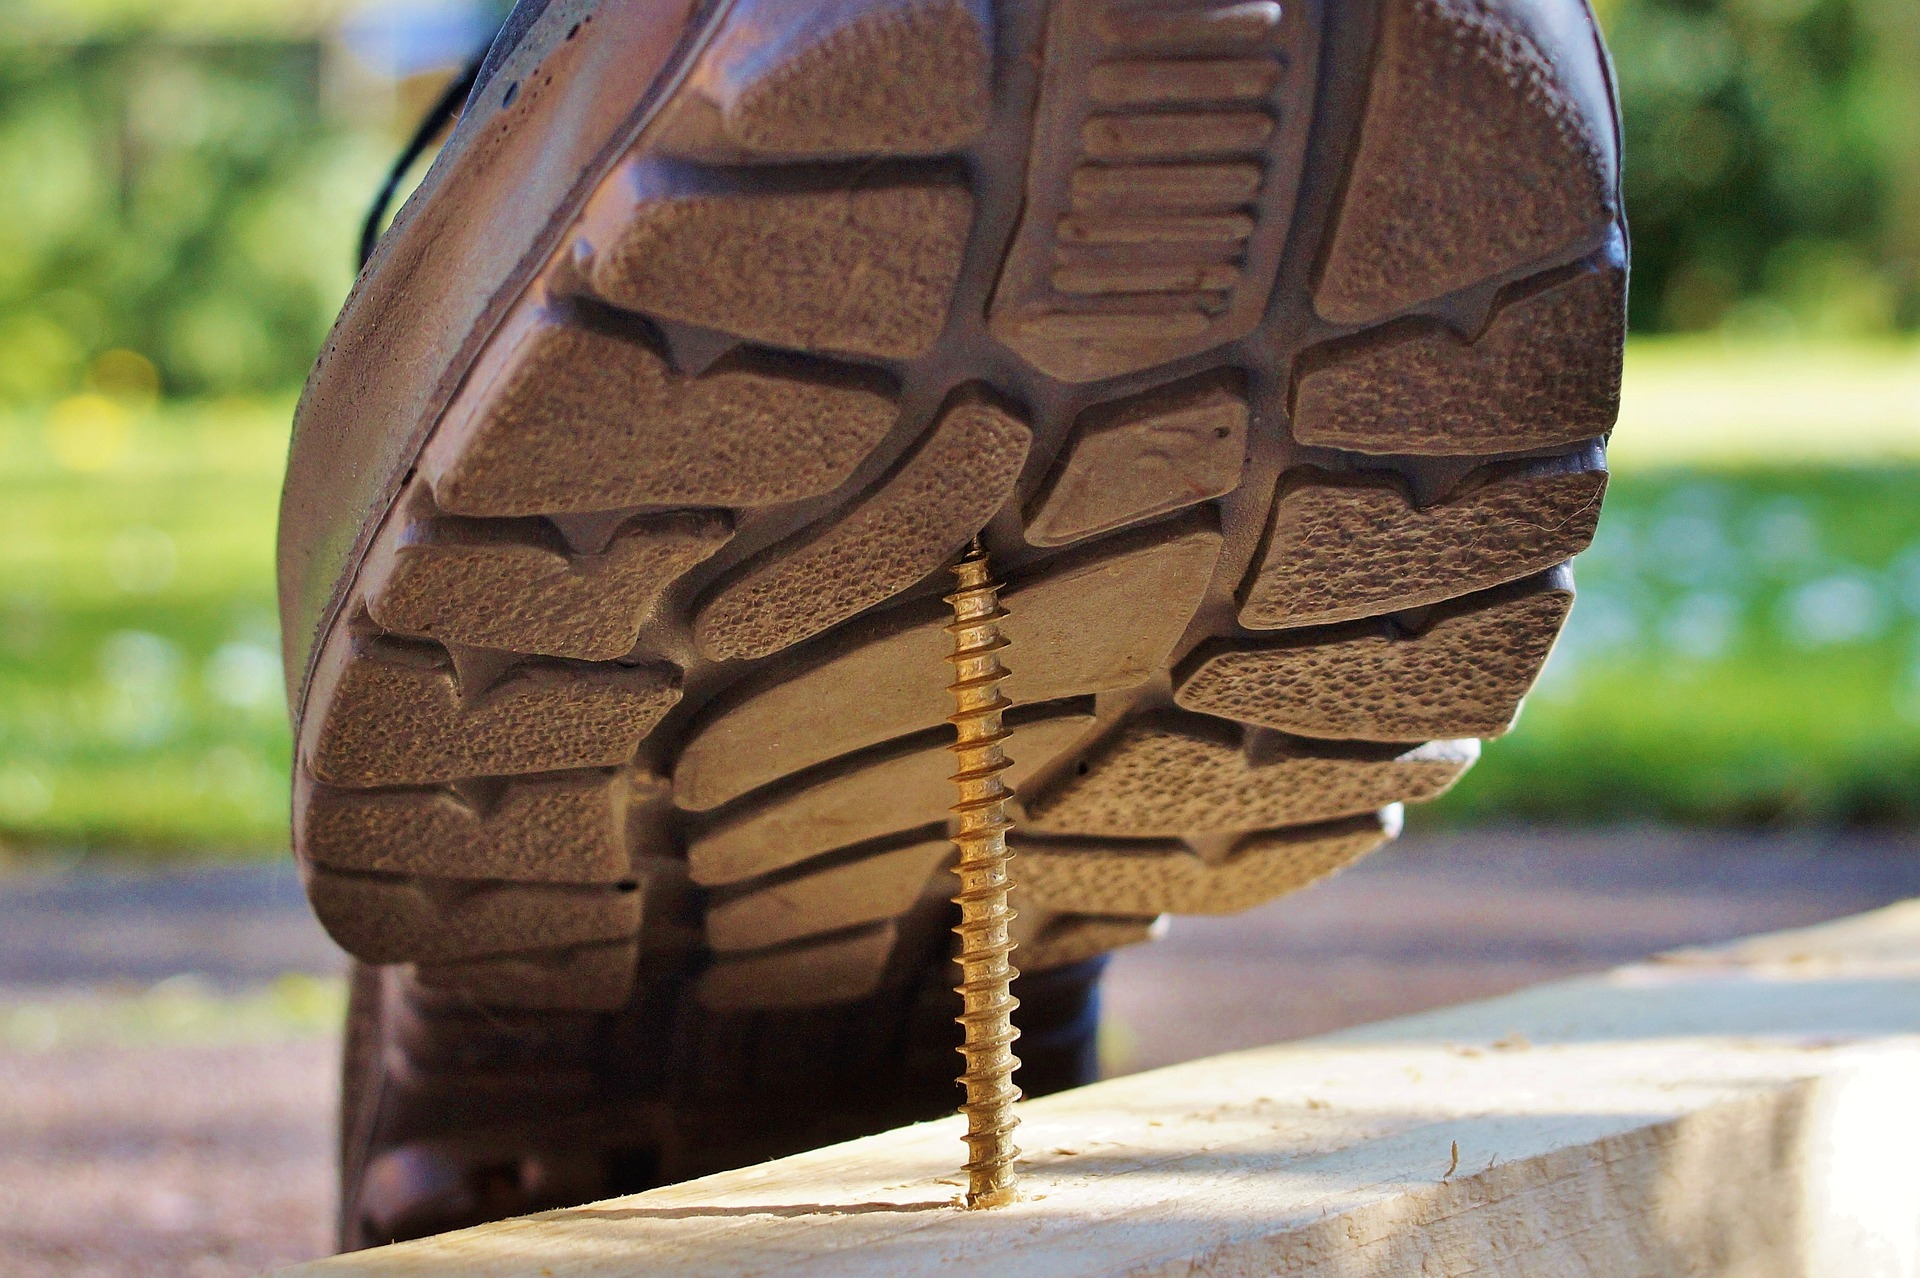 Close-up view of the underside of a person's shoe stepping on an exposed screw.